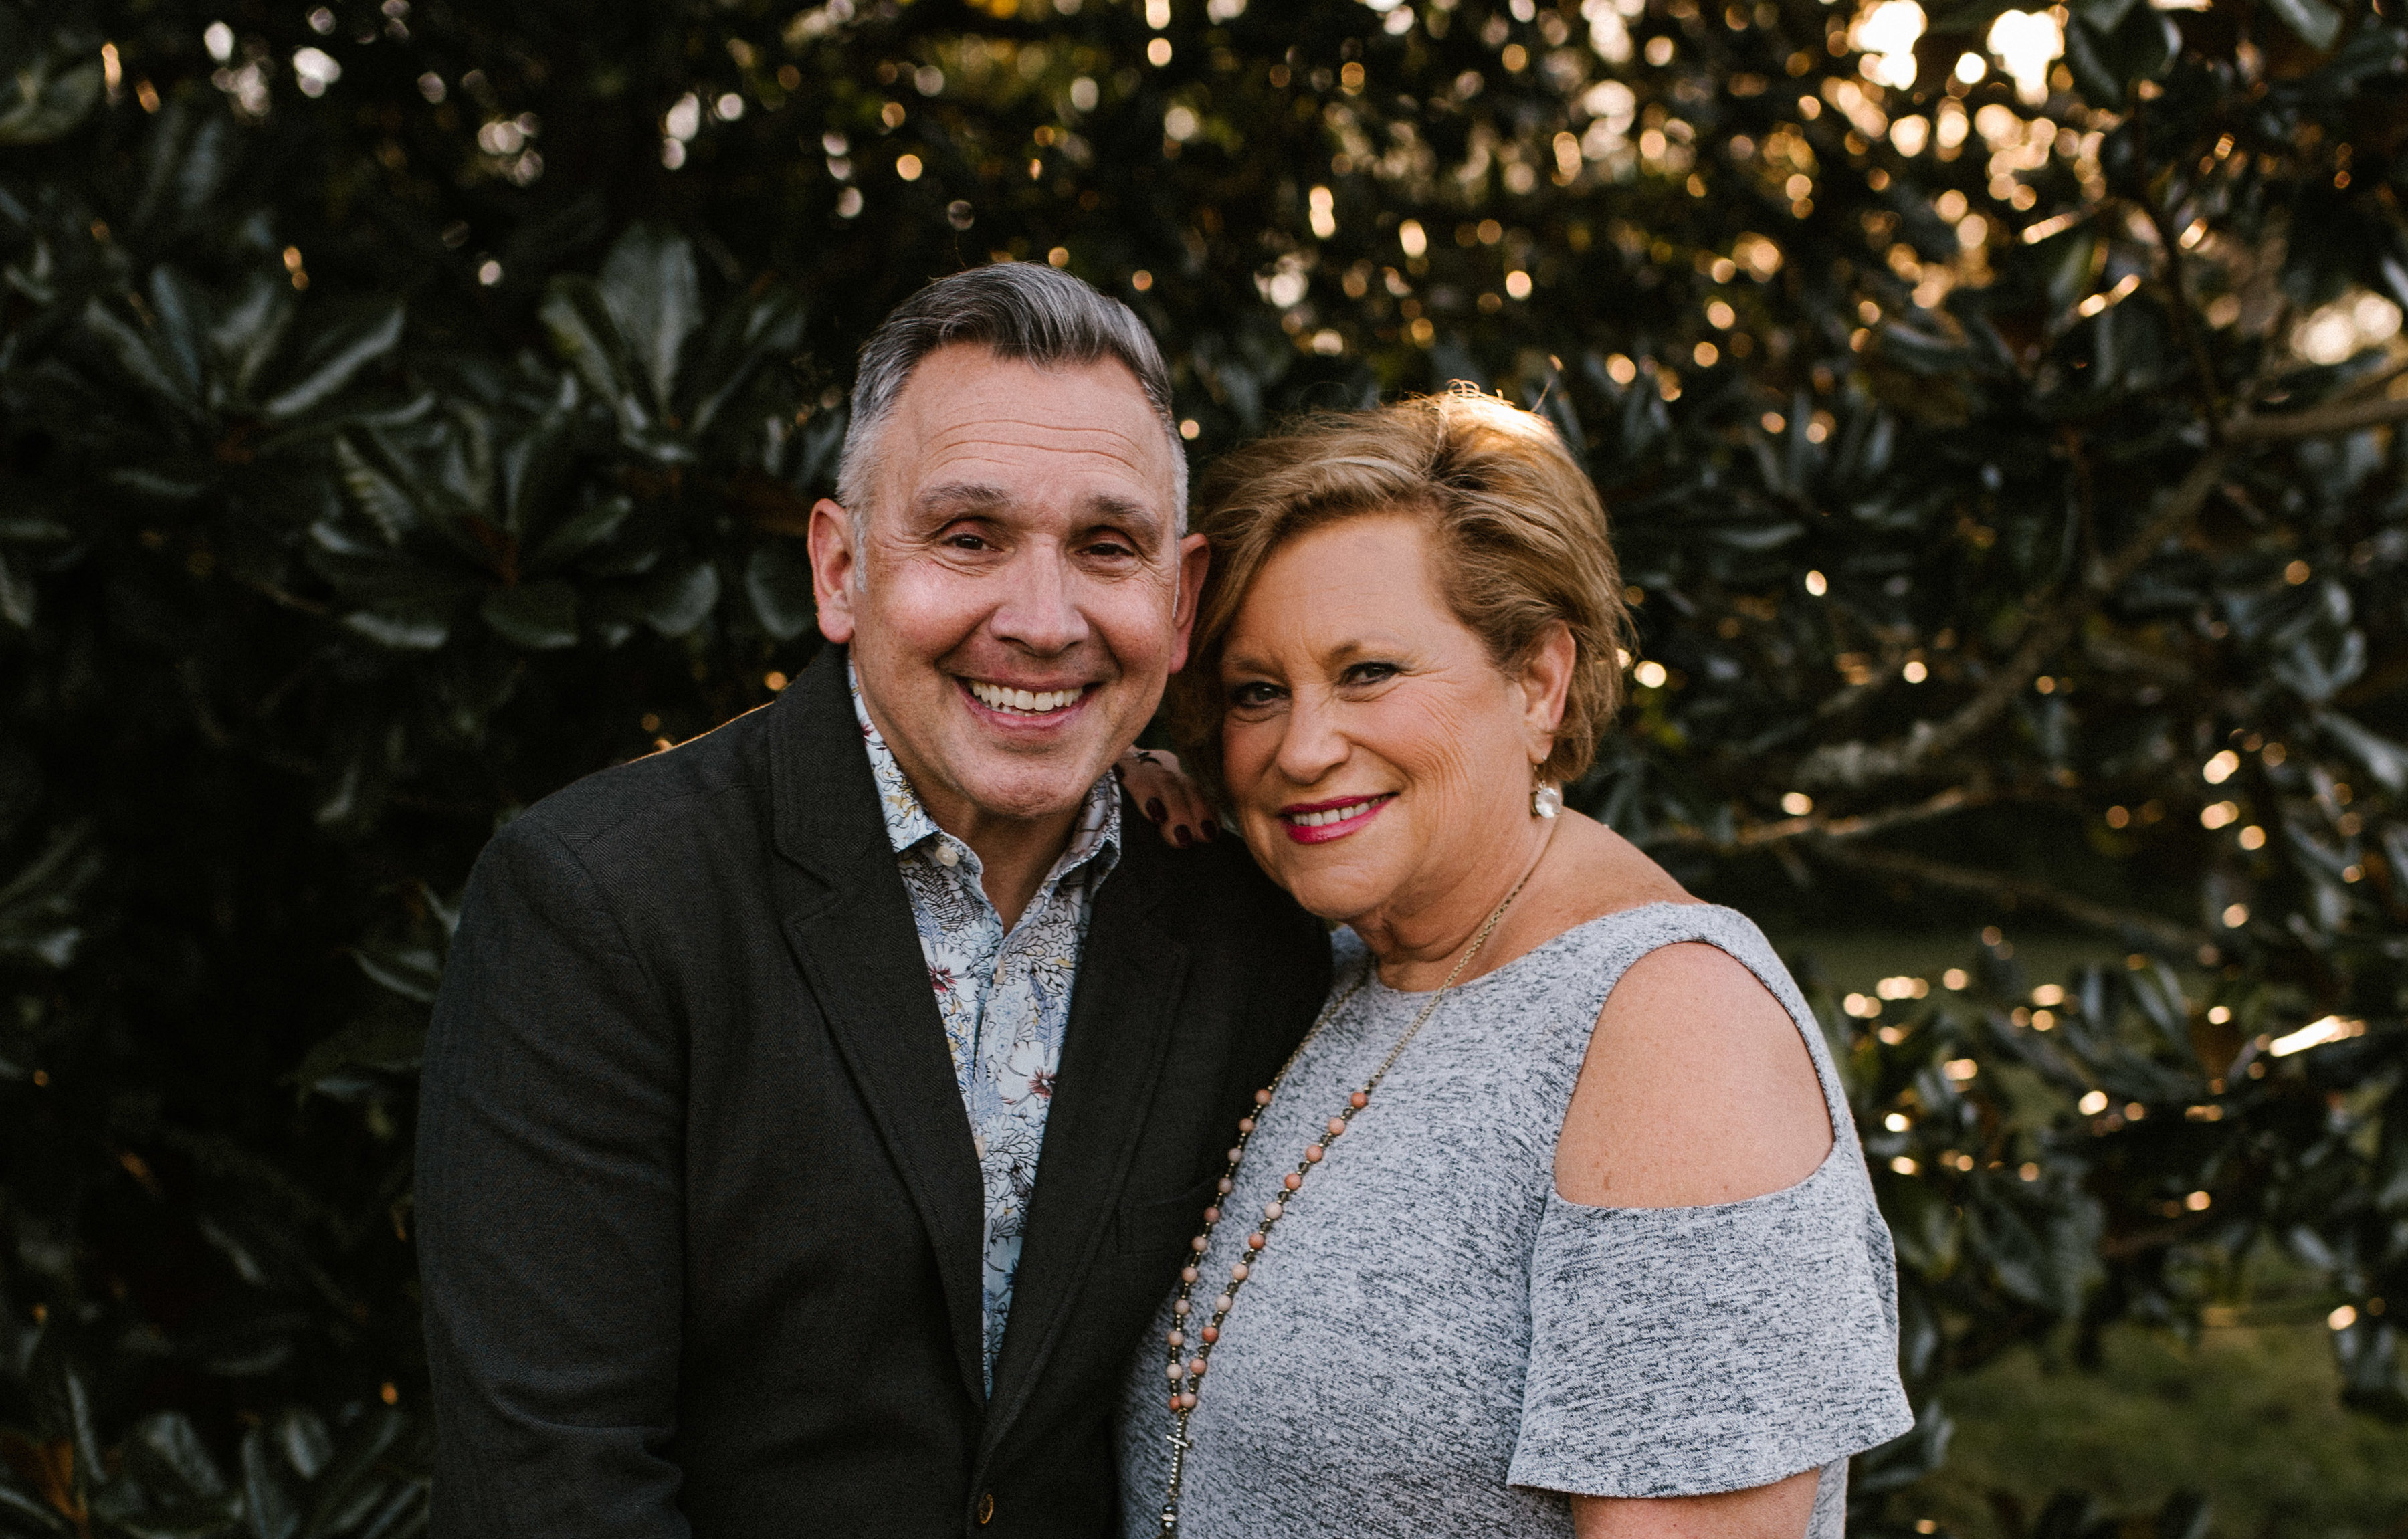 Sandi Patty and her husband